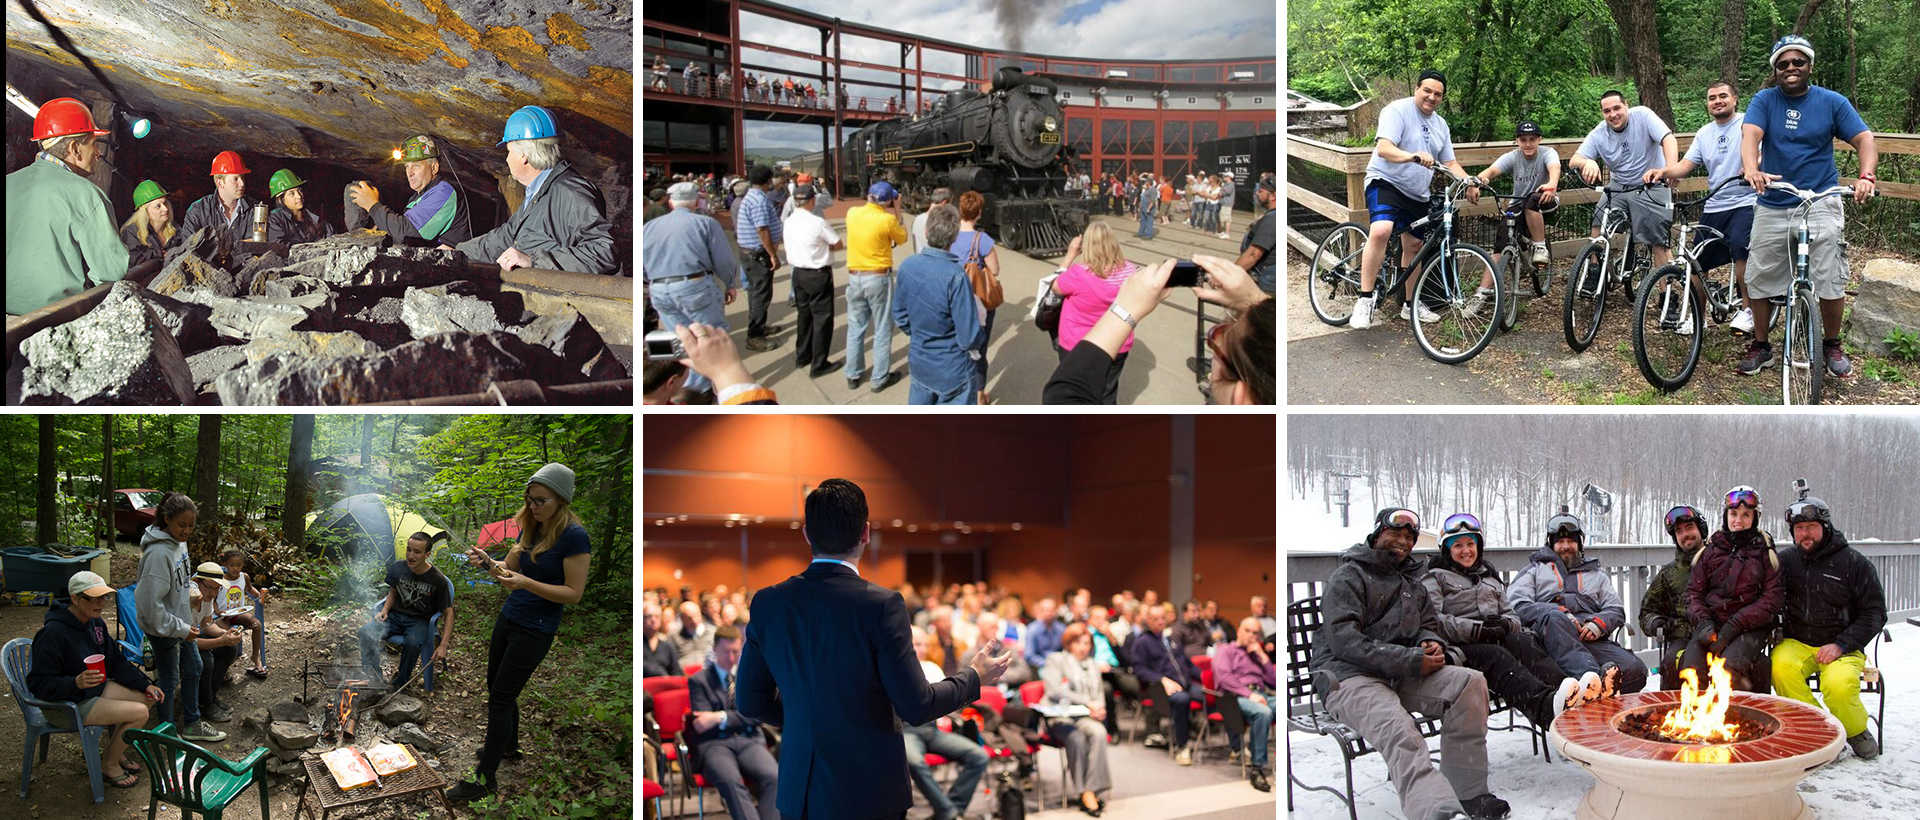 Multiple pics for groups doing various activities in Lackawanna County, PA.